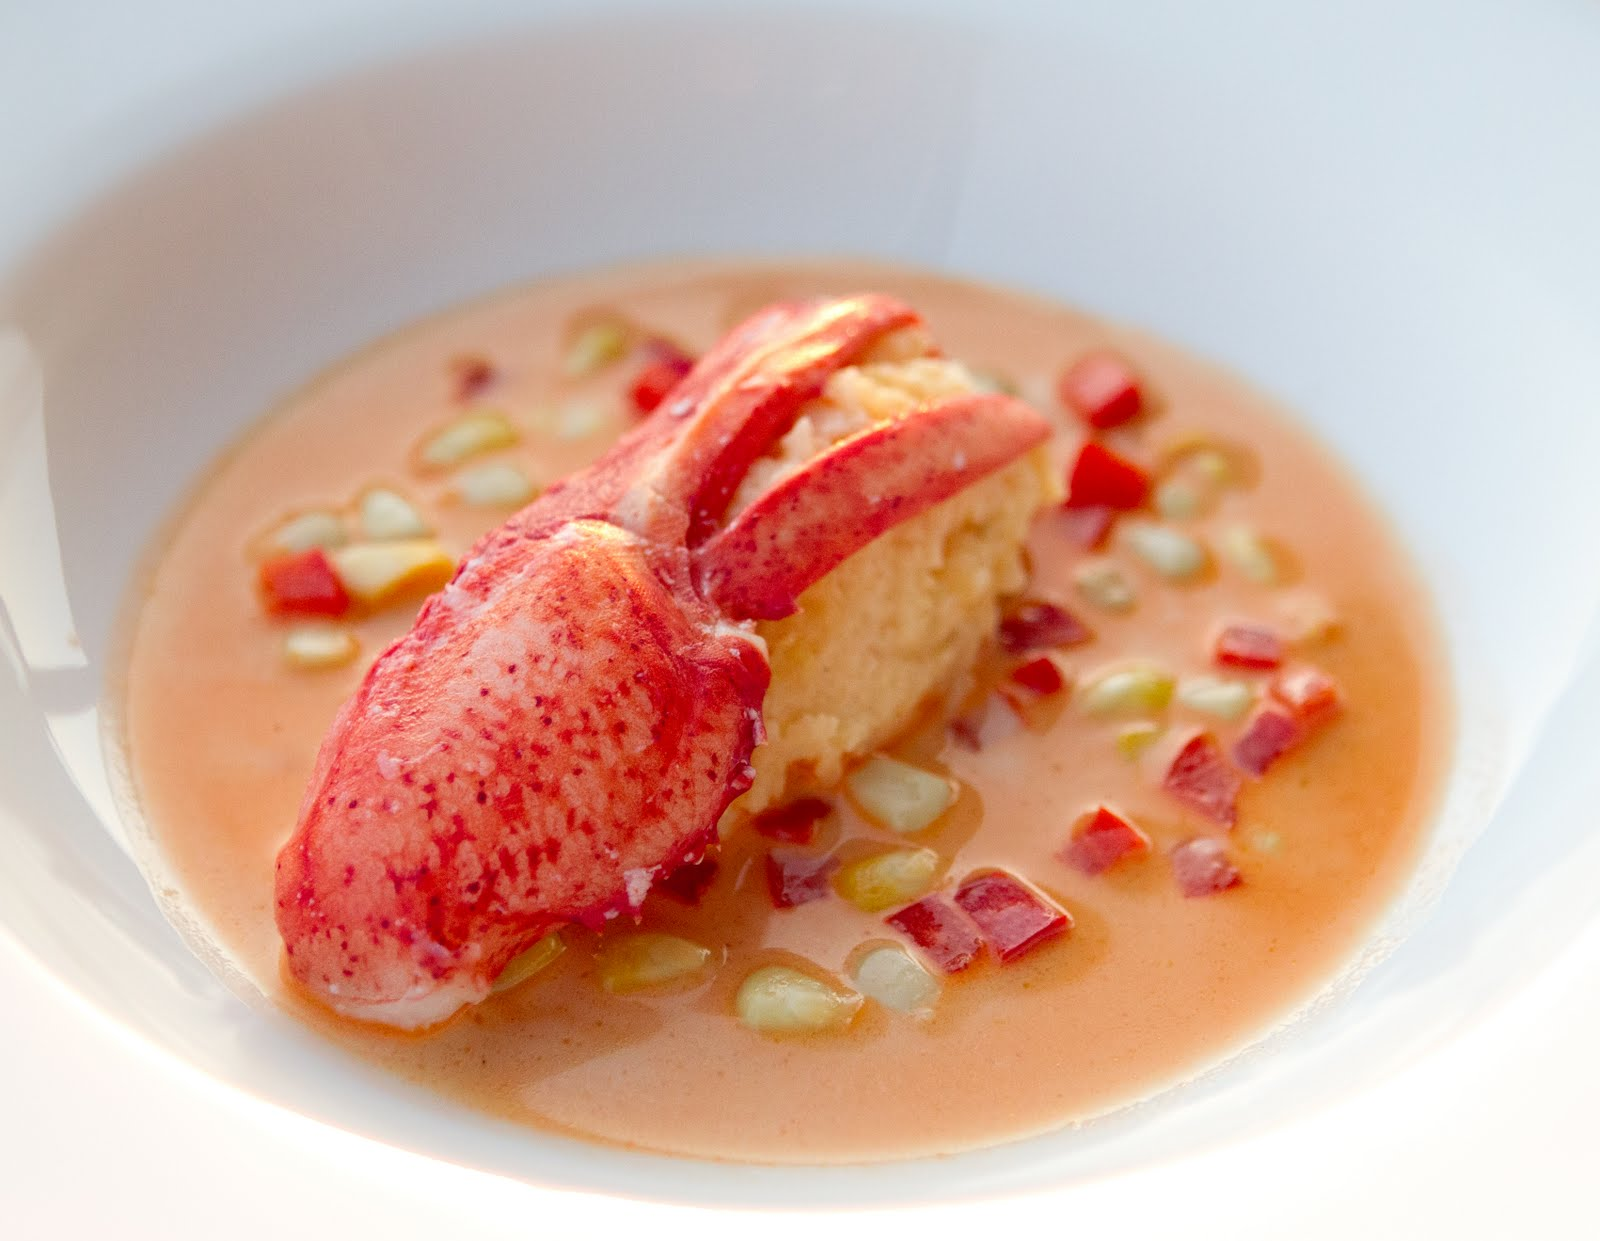 Sous vide lobster claw with sauce Américaine | My Family Table